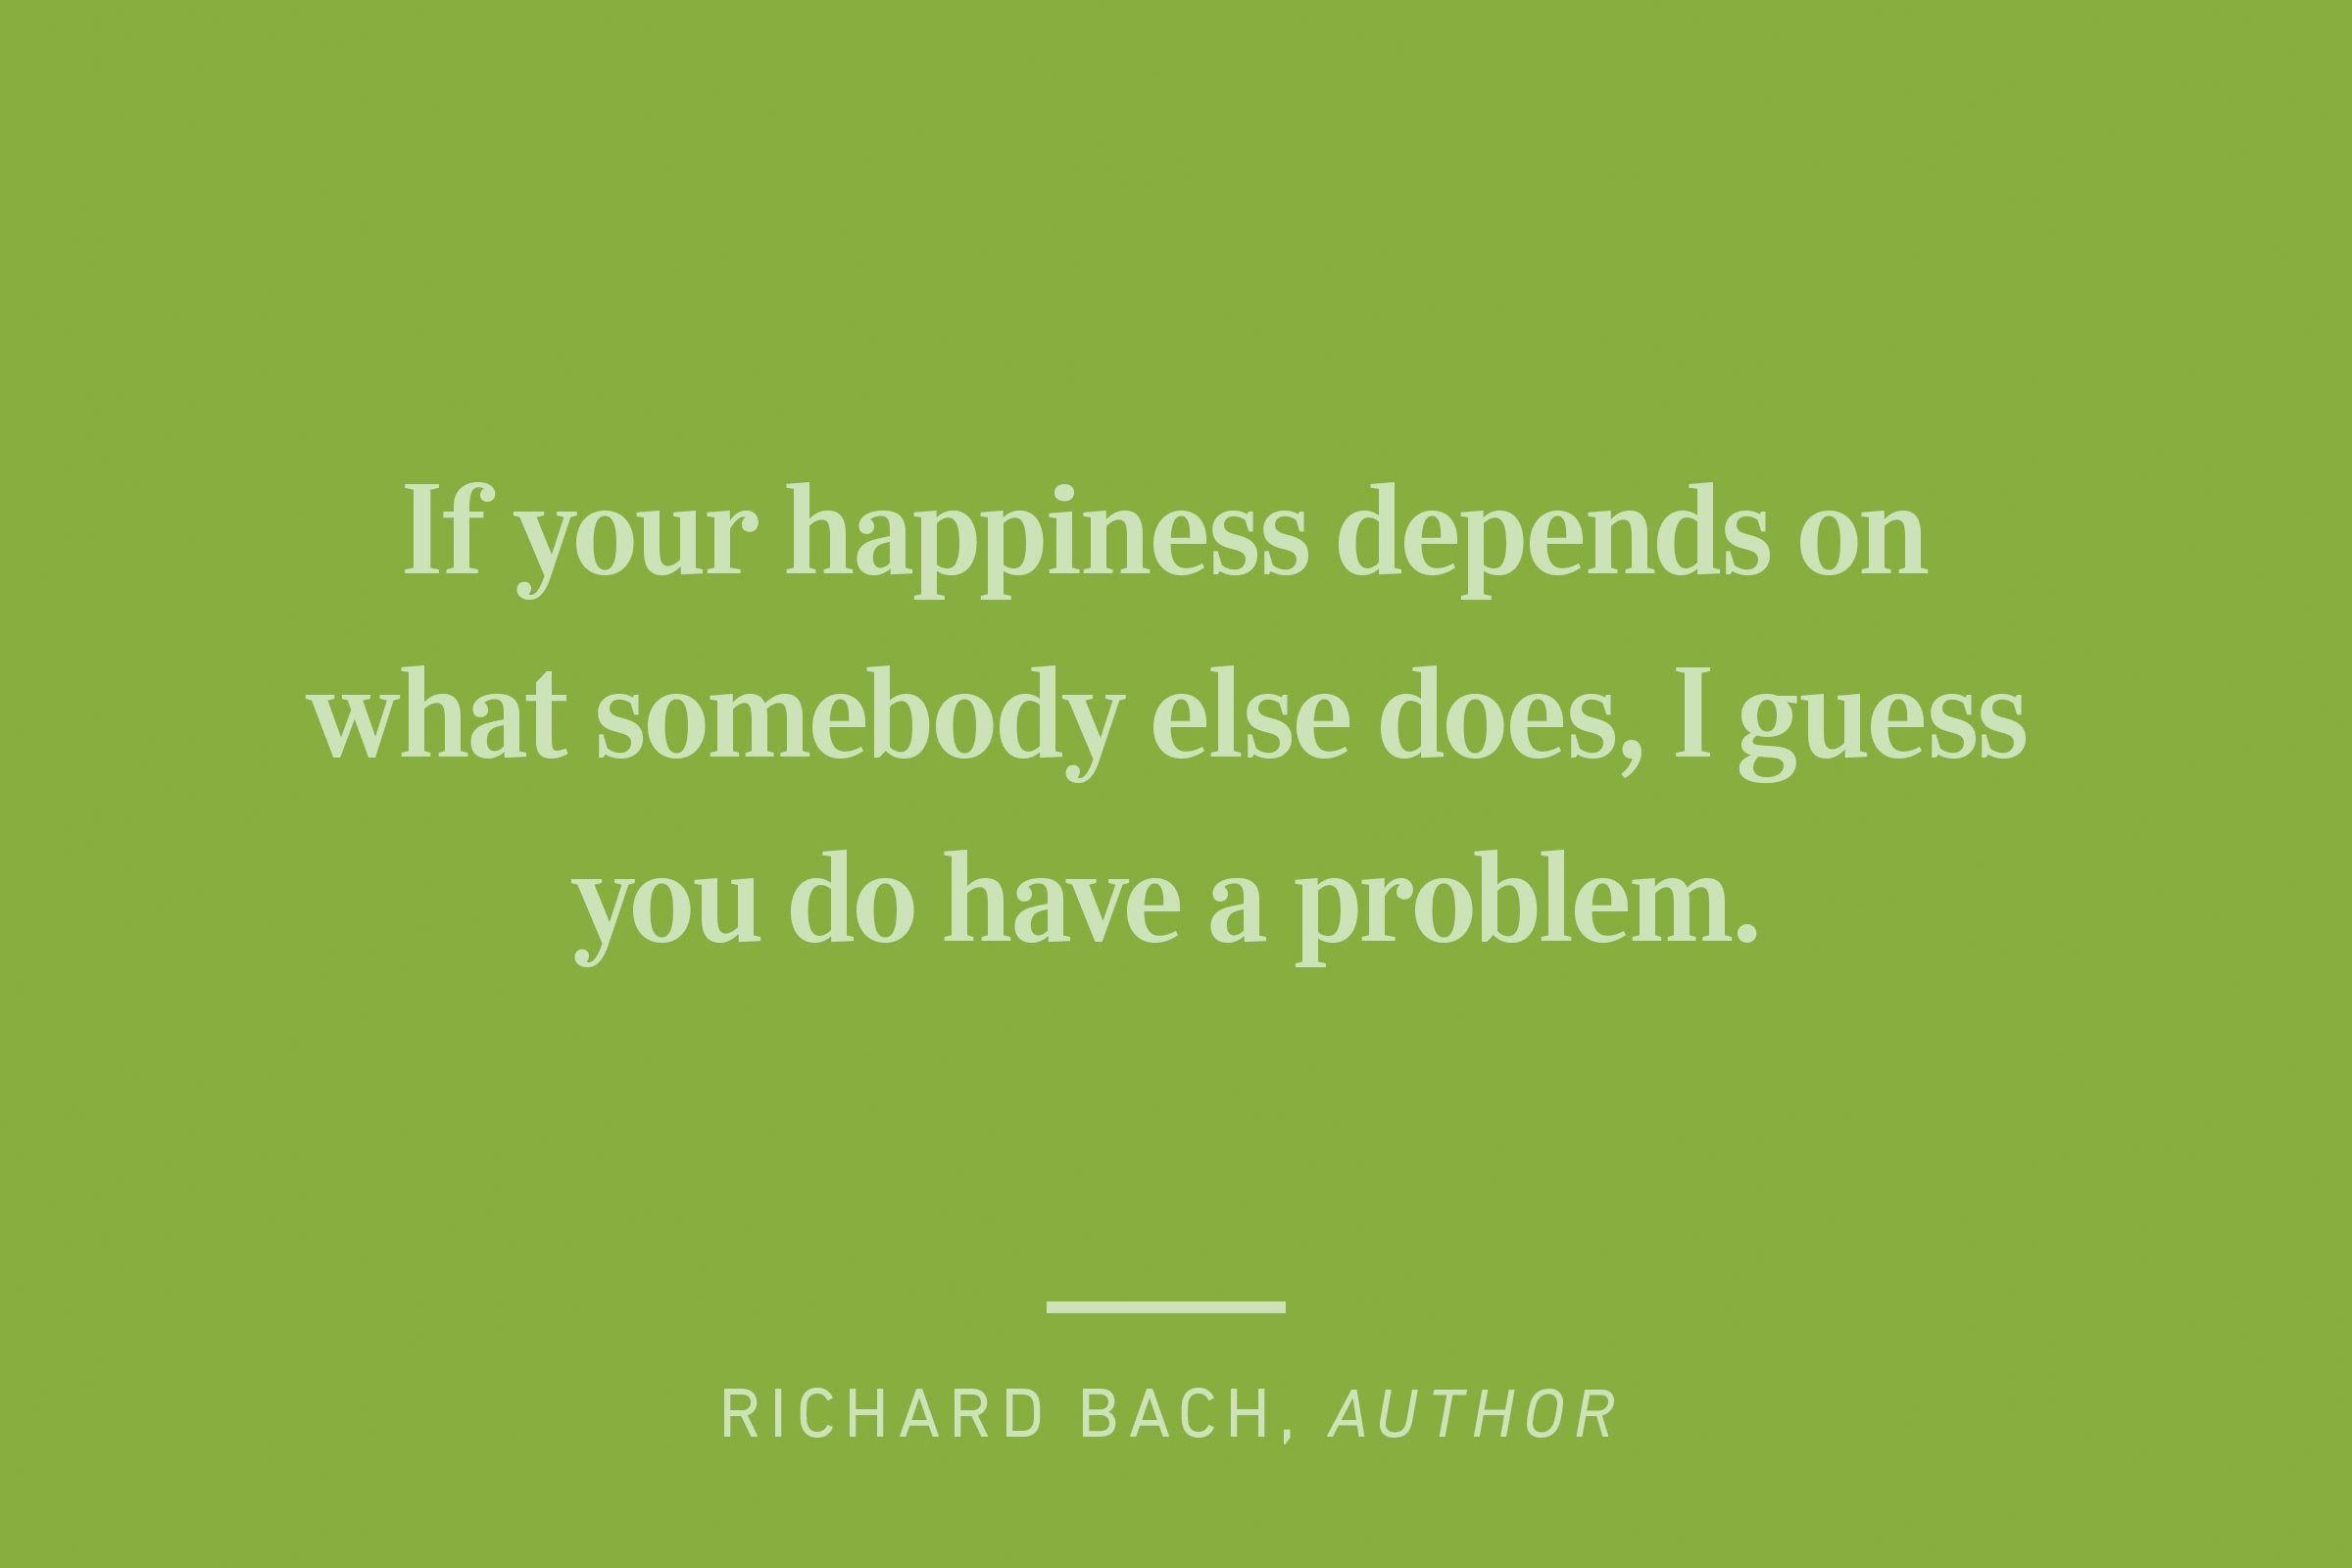 richard bach happiness quote